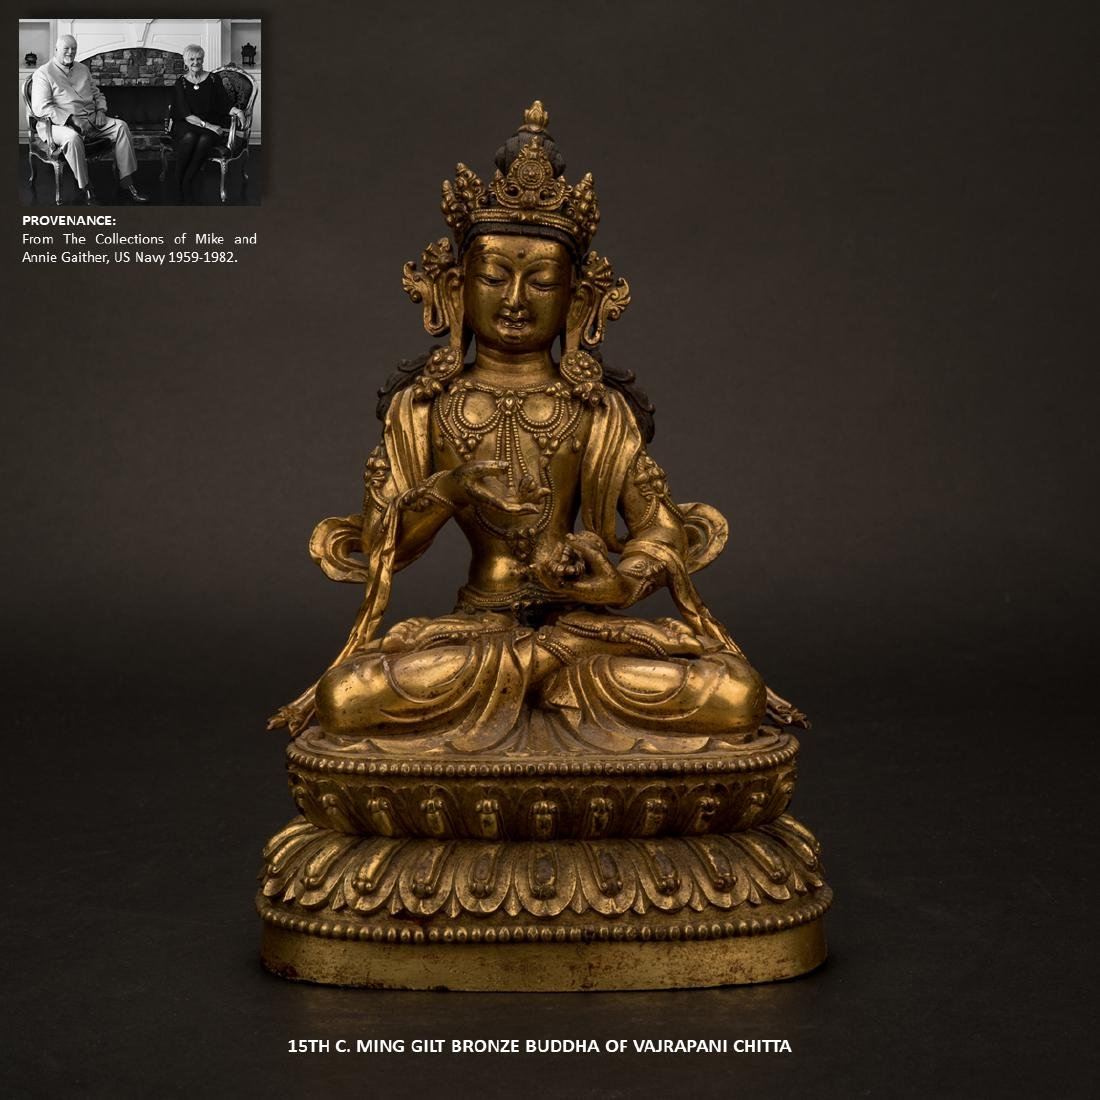 15TH C MING GILT BRONZE BUDDHA OF VAJRAPANI CHITTA